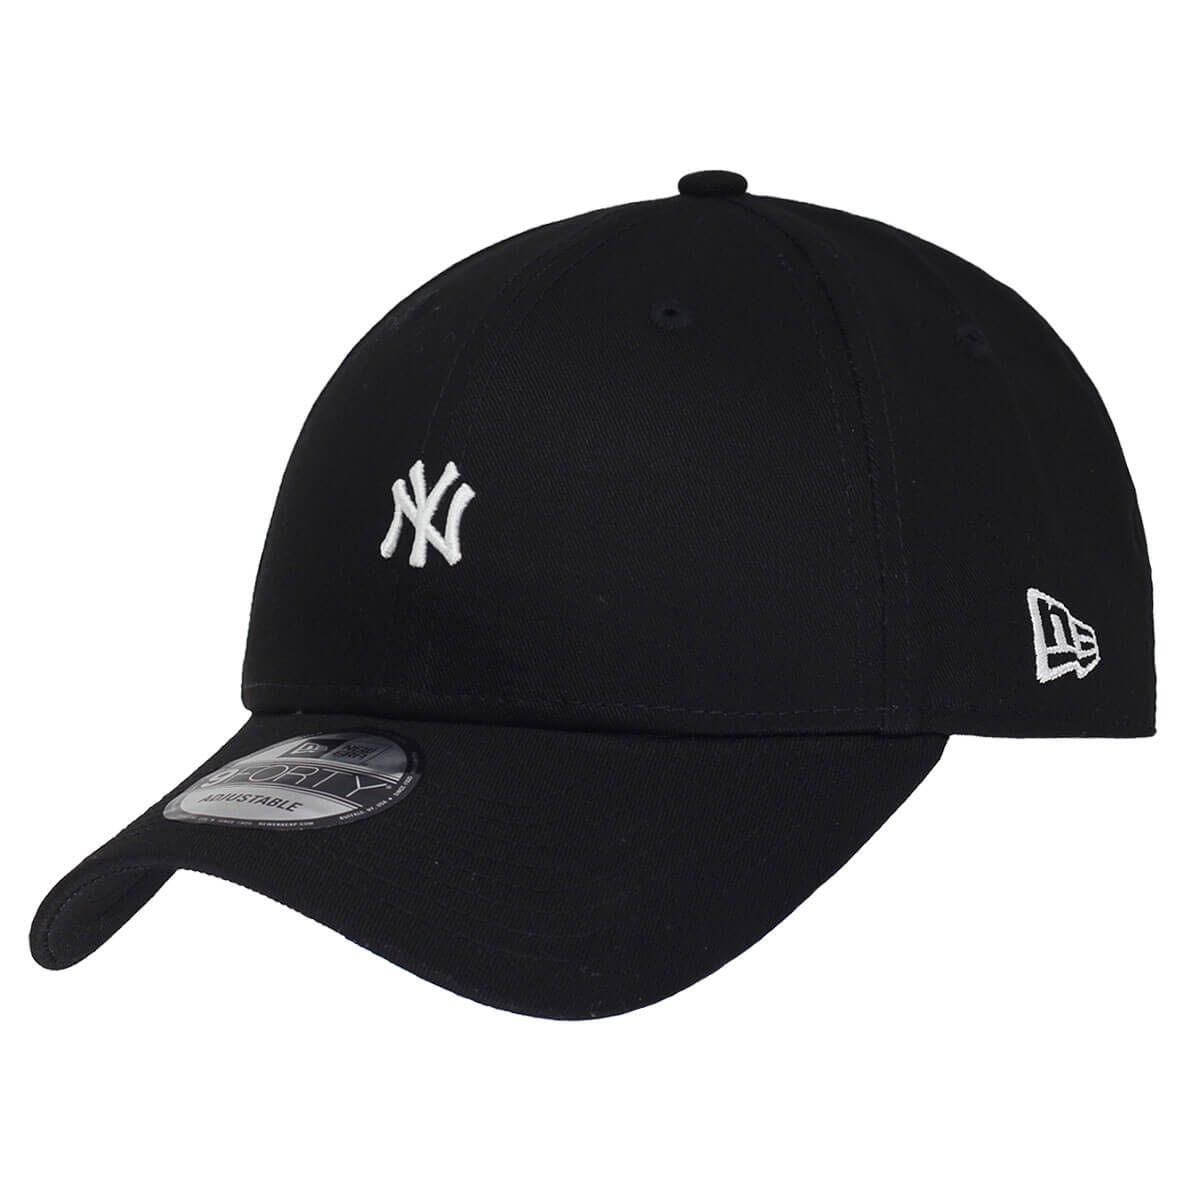 Boné New Era Aba Curva 940 SN MLB NY Yankees Mini Logo Preto Low